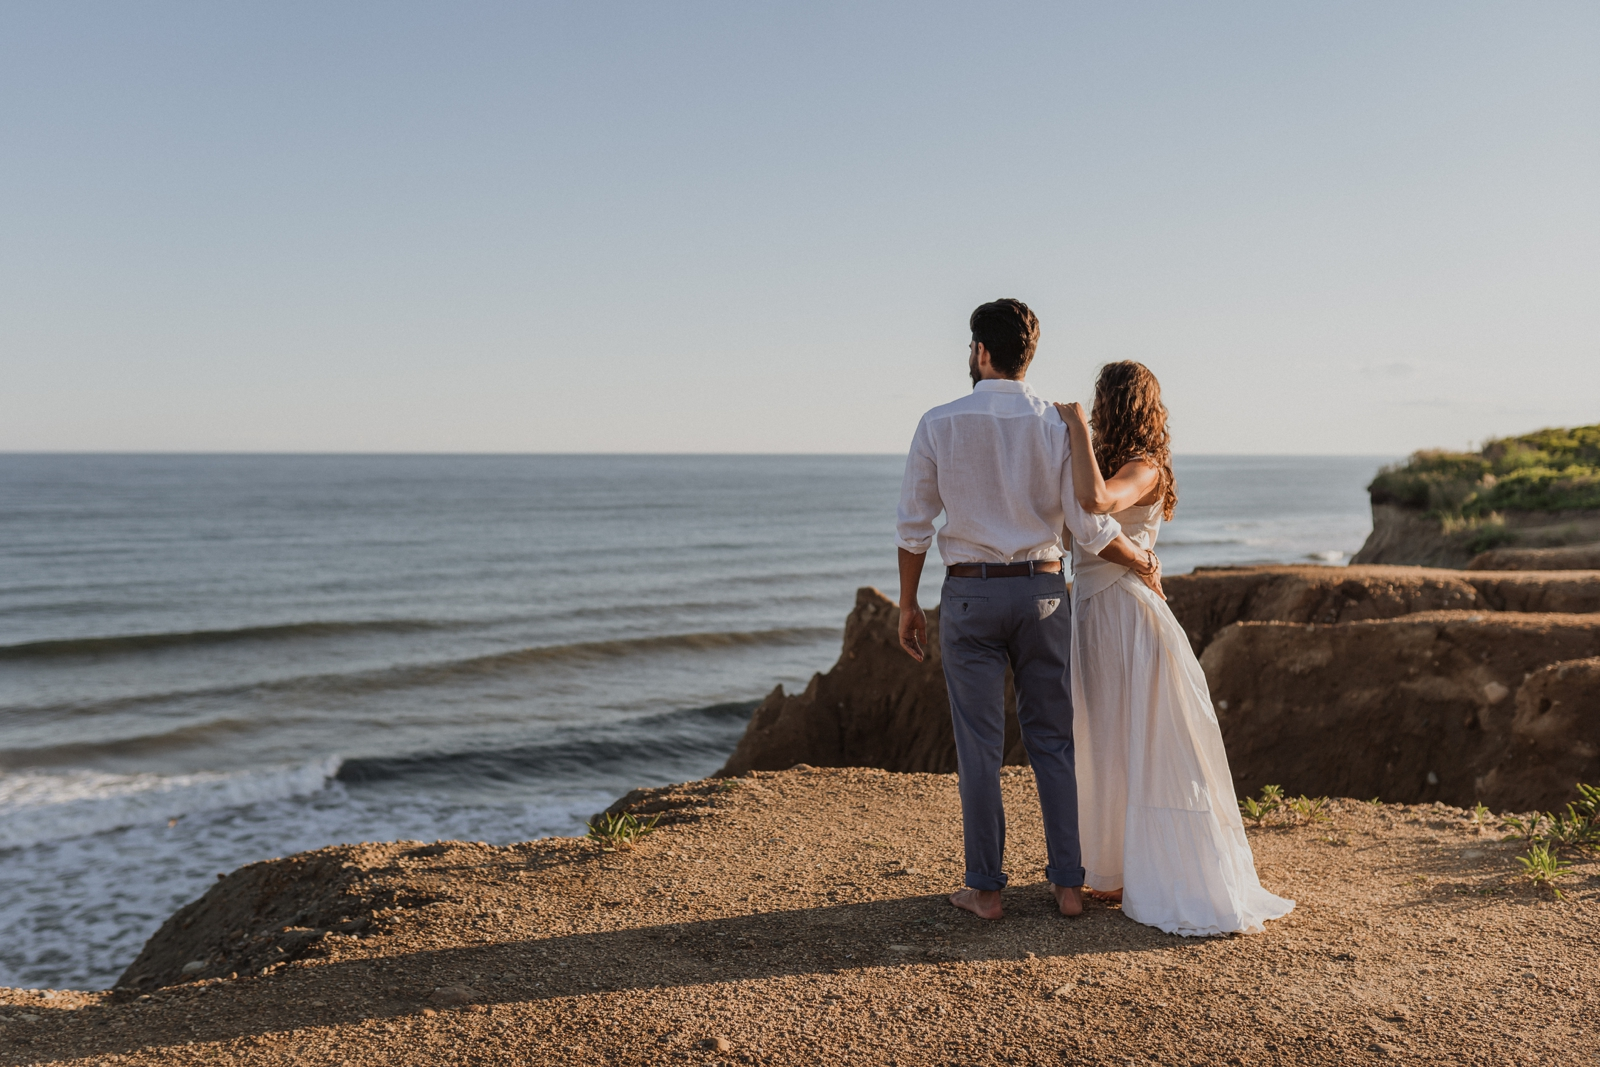 JJP_Nikki & Bud_Shadmoor_Montauk_NY_Cliff Engagement Session10.jpg_blog.jpg